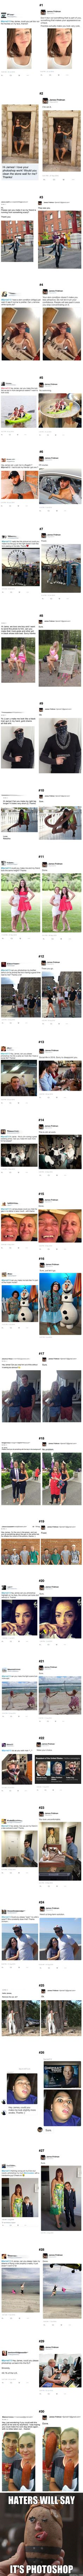 Geek Discover 30 Photoshop Requests That Are Taken Literally By James Fridman More memes funny videos and pics on James Fridman E Have A Laugh Just For Laughs Funny Posts Laugh Out Loud The Funny I Laughed Funny Pictures Funny Posts, Funny Shit, Hilarious, Funny Work, Funny Stuff, Funny Humor, Really Funny, The Funny, Super Funny